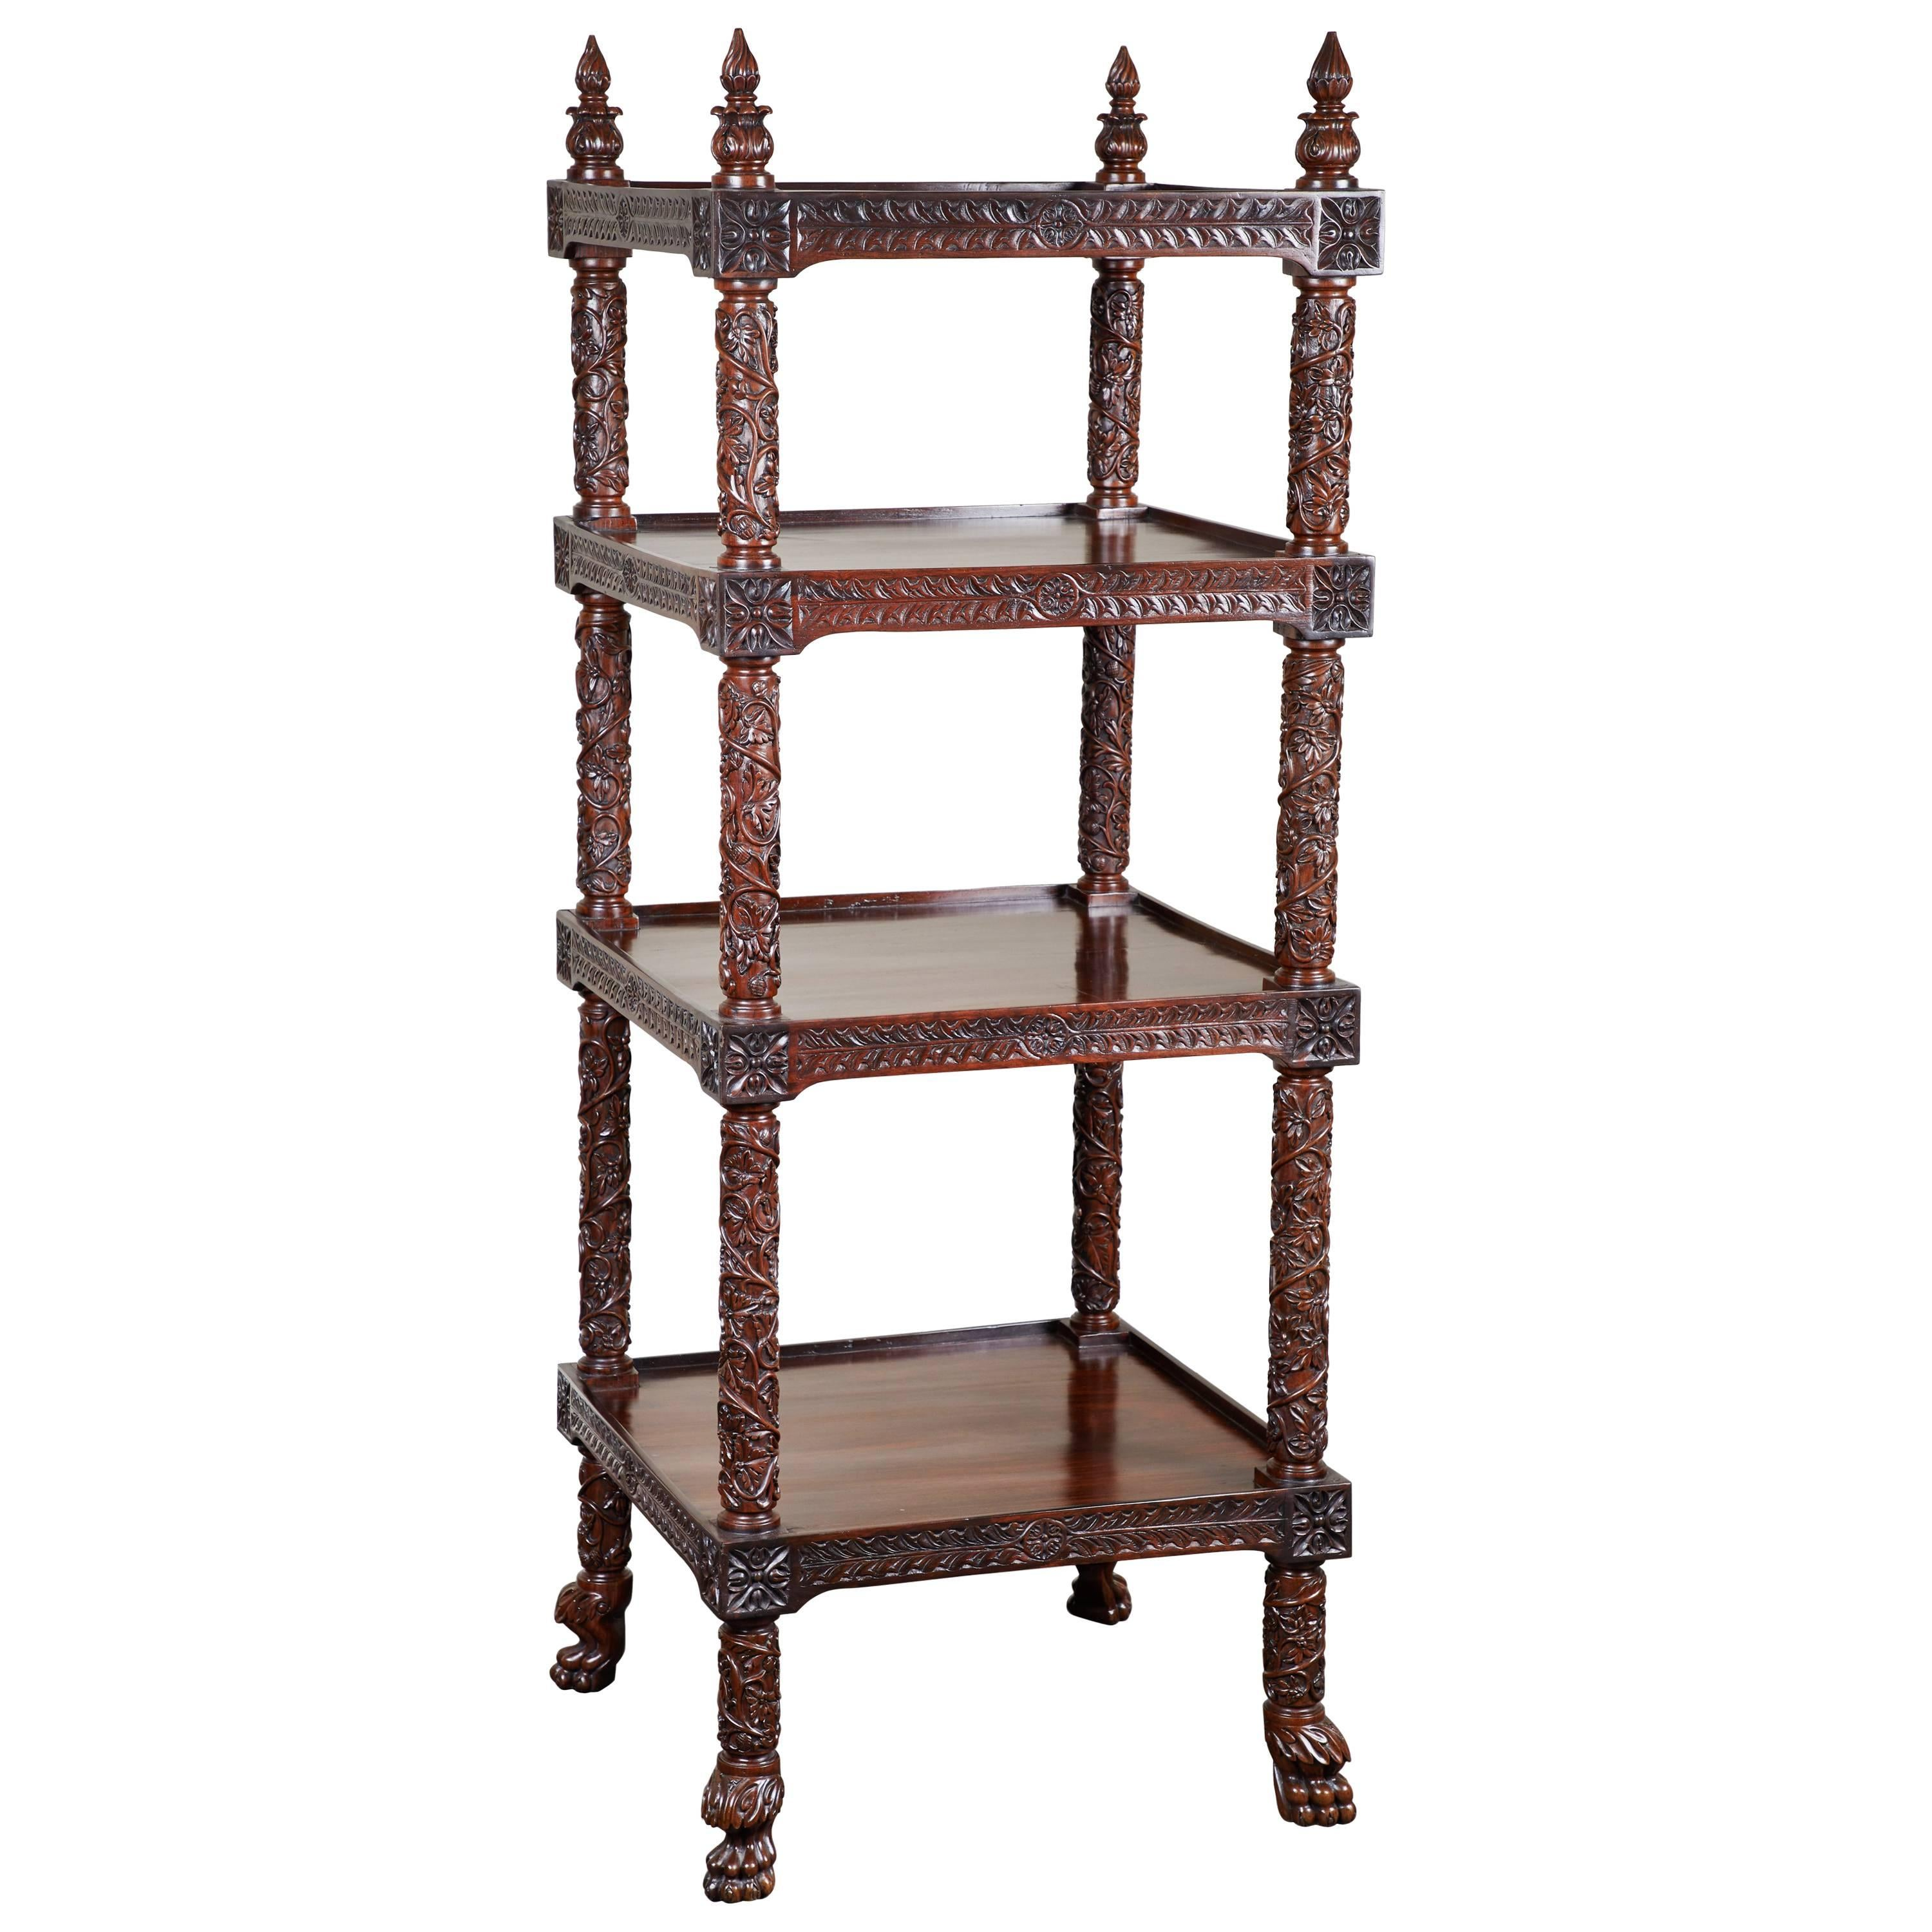 19th century fourtiered rosewood carved etagere